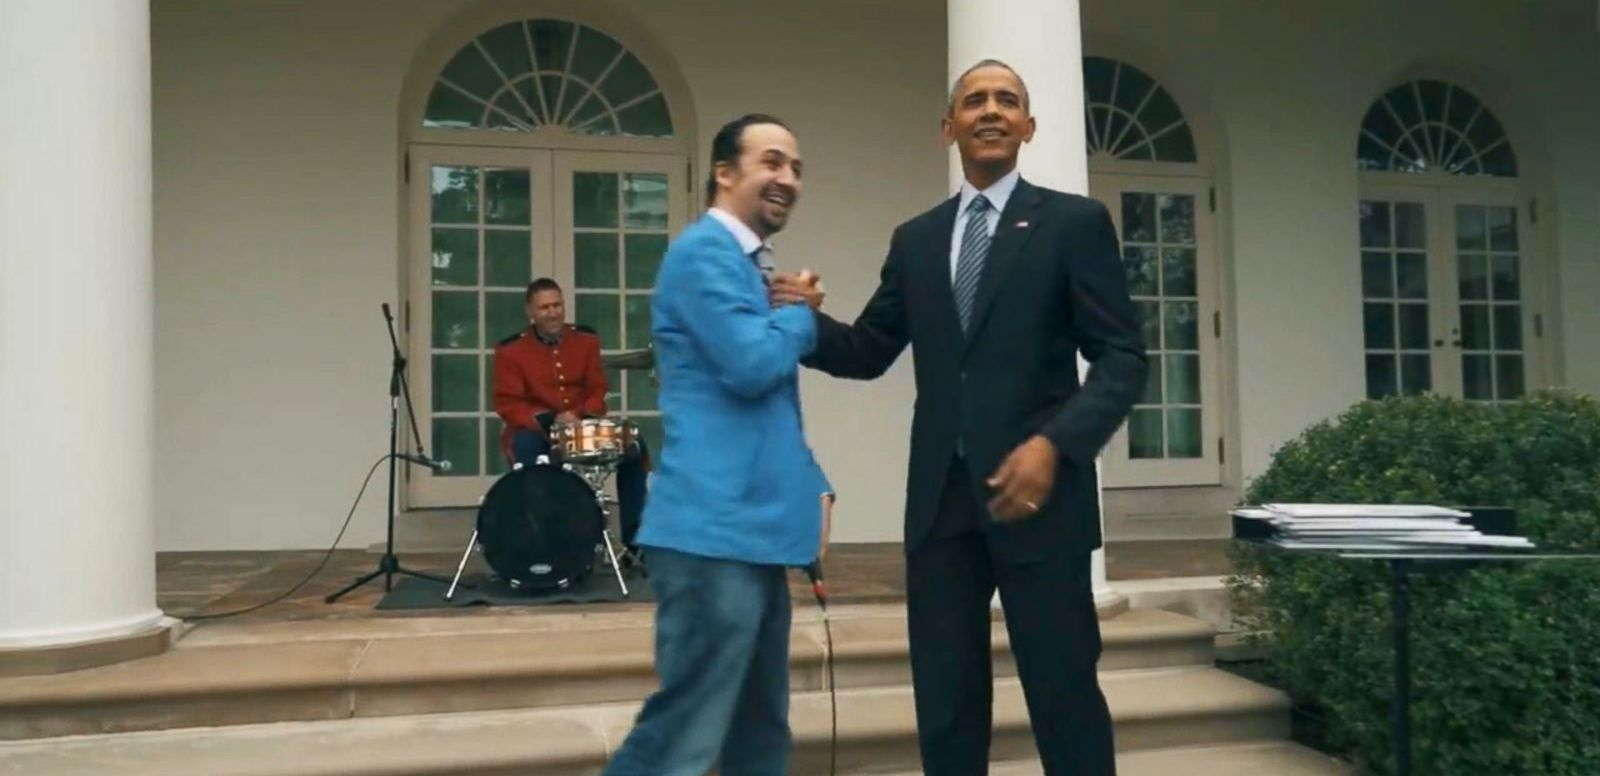 39 hamilton 39 creator lin manuel miranda raps in the rose garden with obama abc news. Black Bedroom Furniture Sets. Home Design Ideas